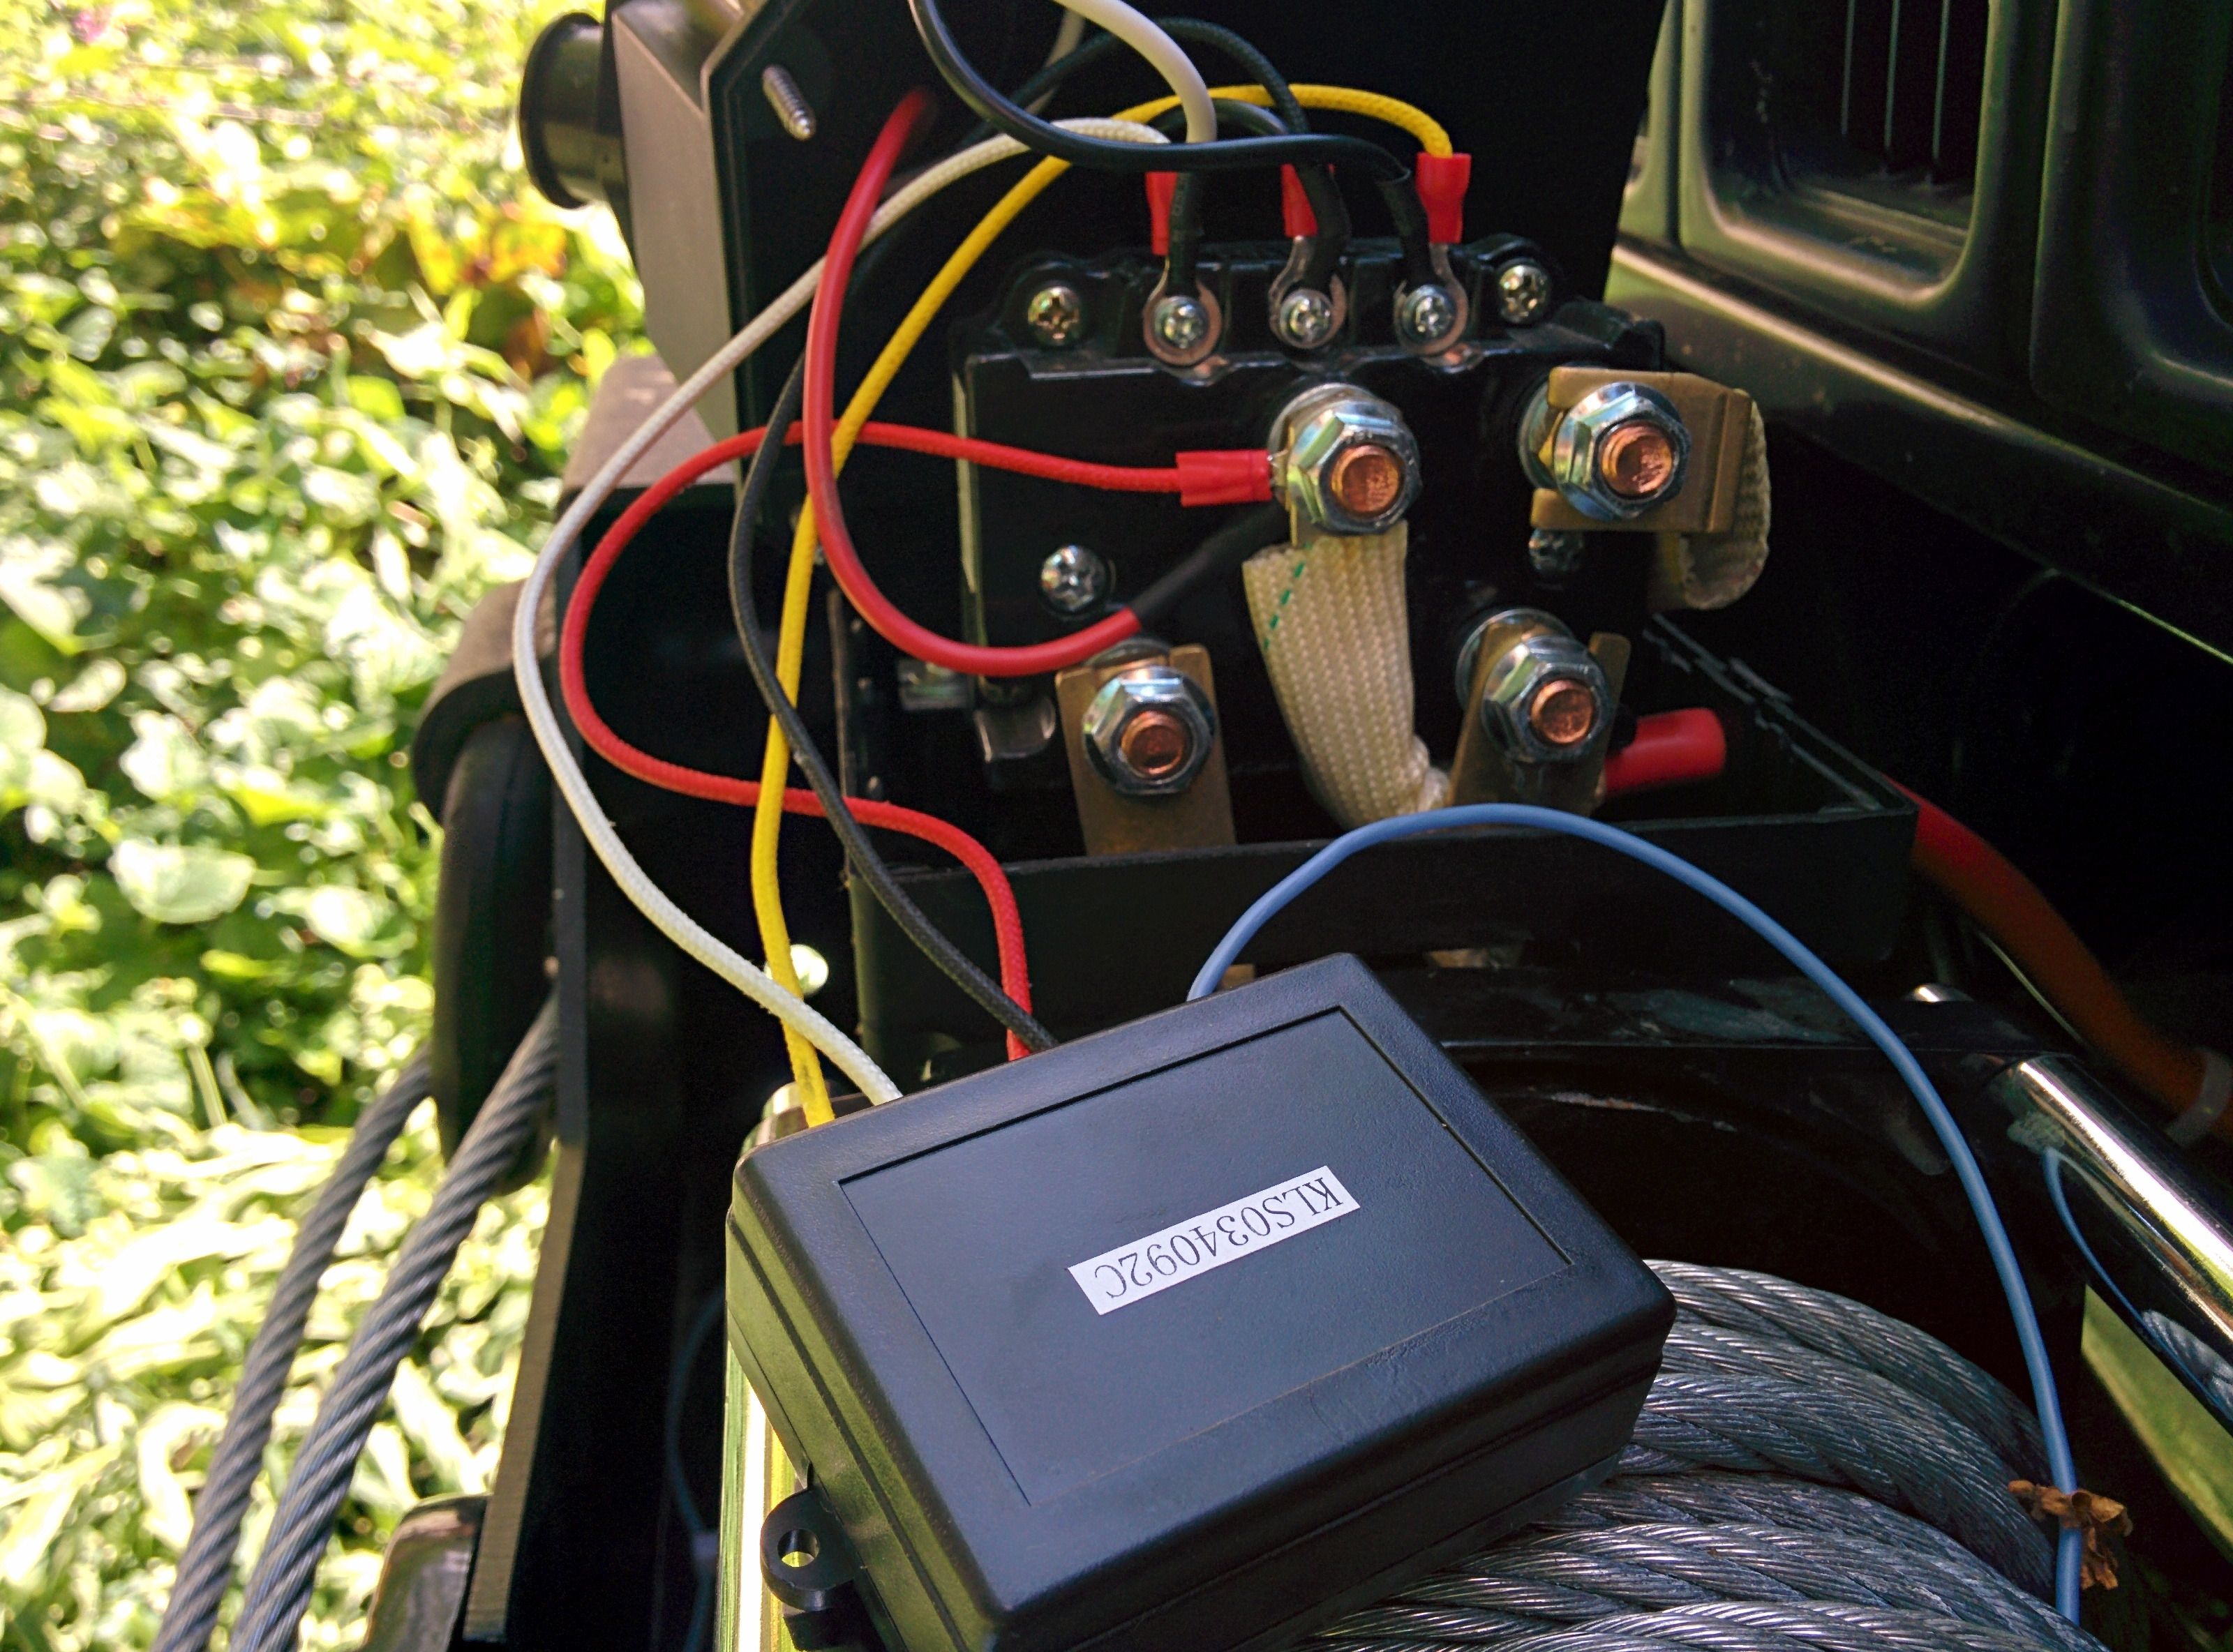 medium resolution of wiring diagram superwinch s4000 images gallery